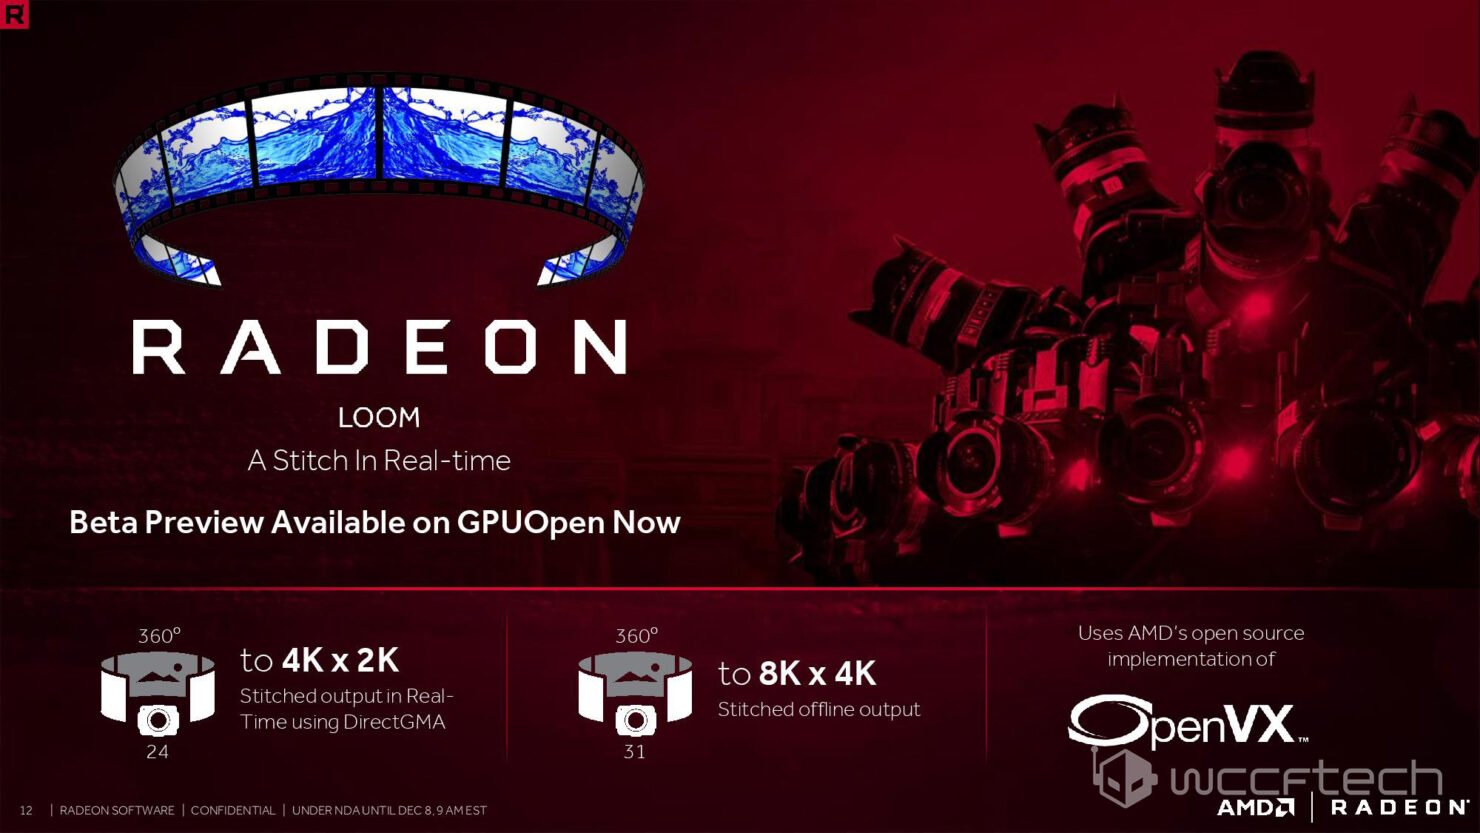 radeon-software-crimson-relive-nda-only-confidential-v4-page-012-copy